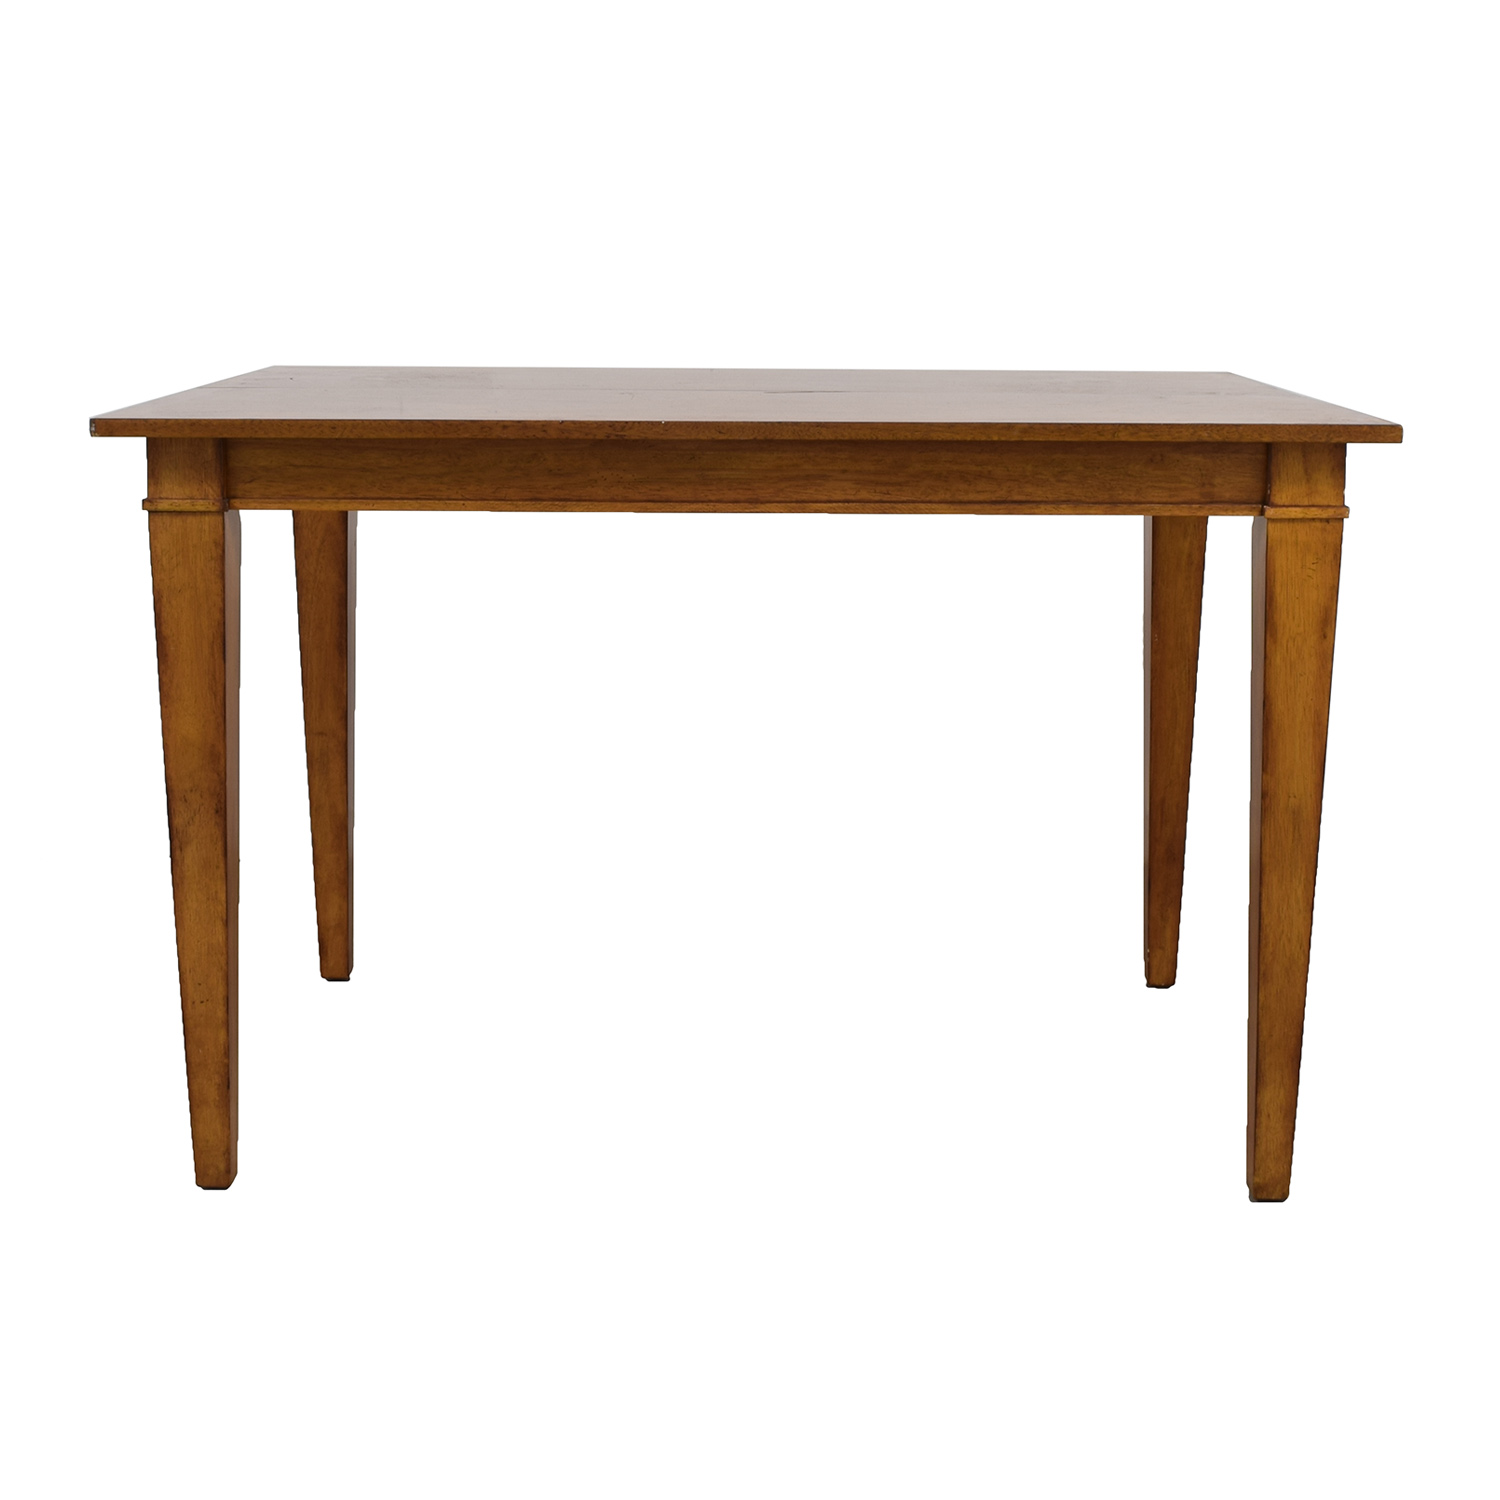 Ethan Allen Ethan Allen Wood Extendable Dining Table Dinner Tables